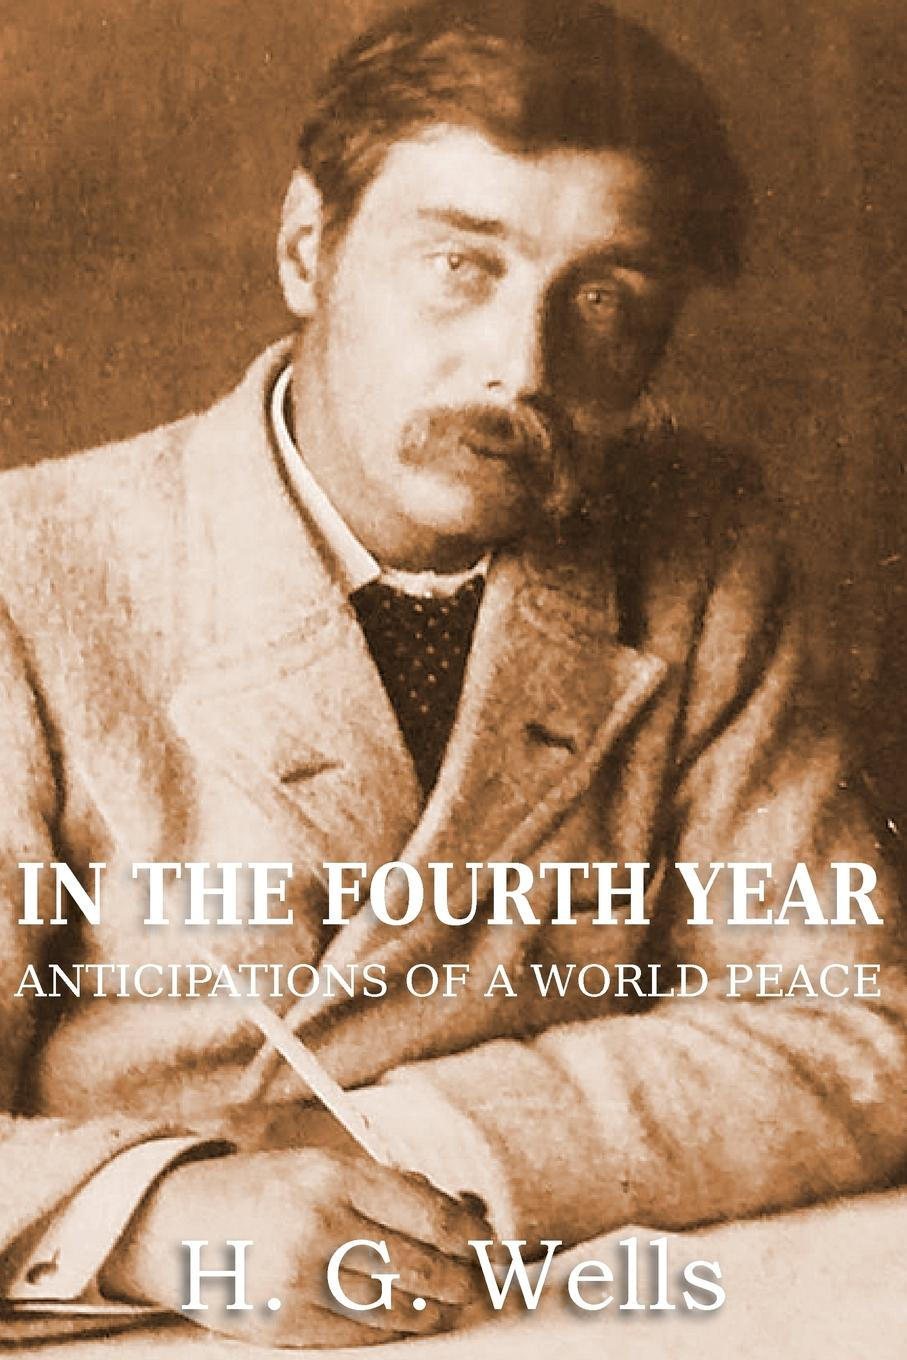 H. G. Wells In the Fourth Year Anticipations of a World Peace герберт джордж уэллс in the fourth year anticipations of a world peace